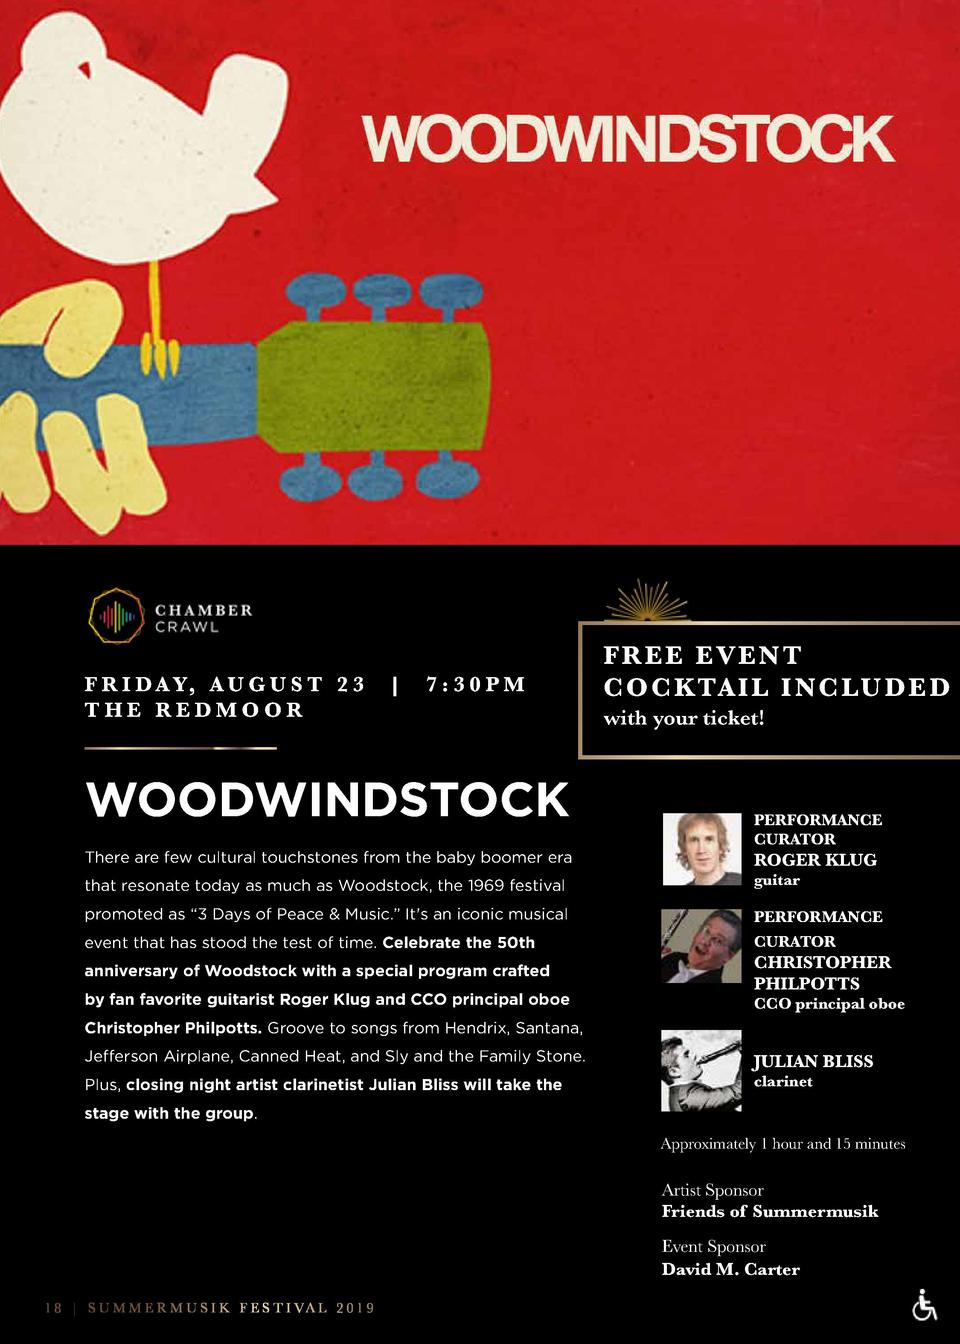 SUMMERMUSIK WHY SUBSCRIBE  E V E N T S S TA RT  F R I D A Y, A U G U S T 2 3 THE REDMOOR     7 30PM  WOODWINDSTOCK There a...